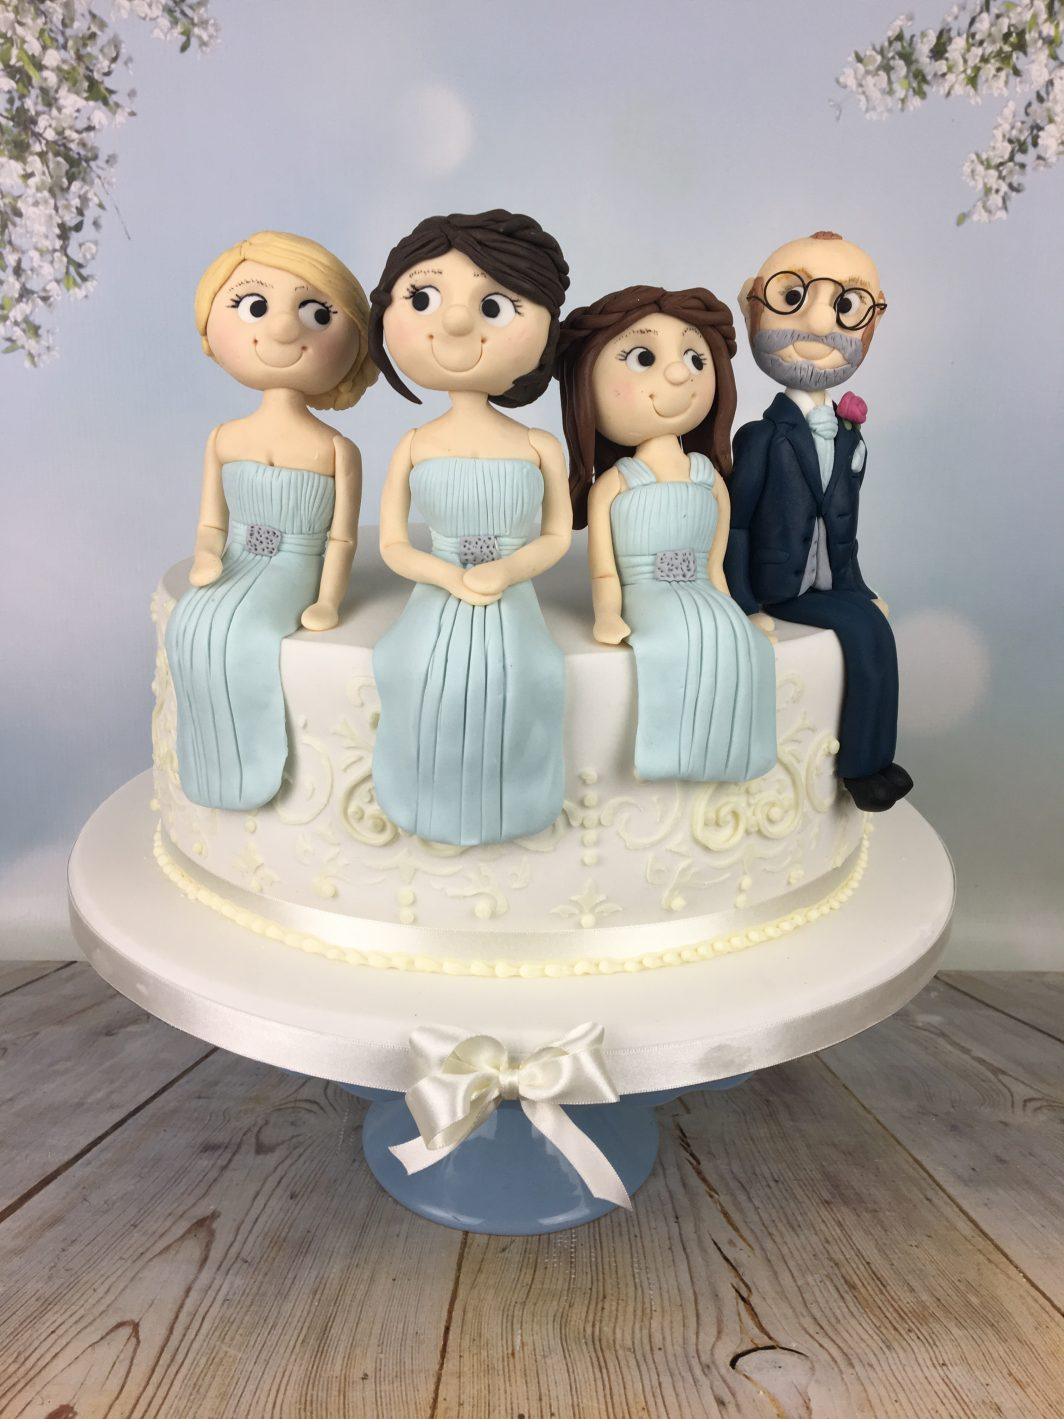 Bridal party figures